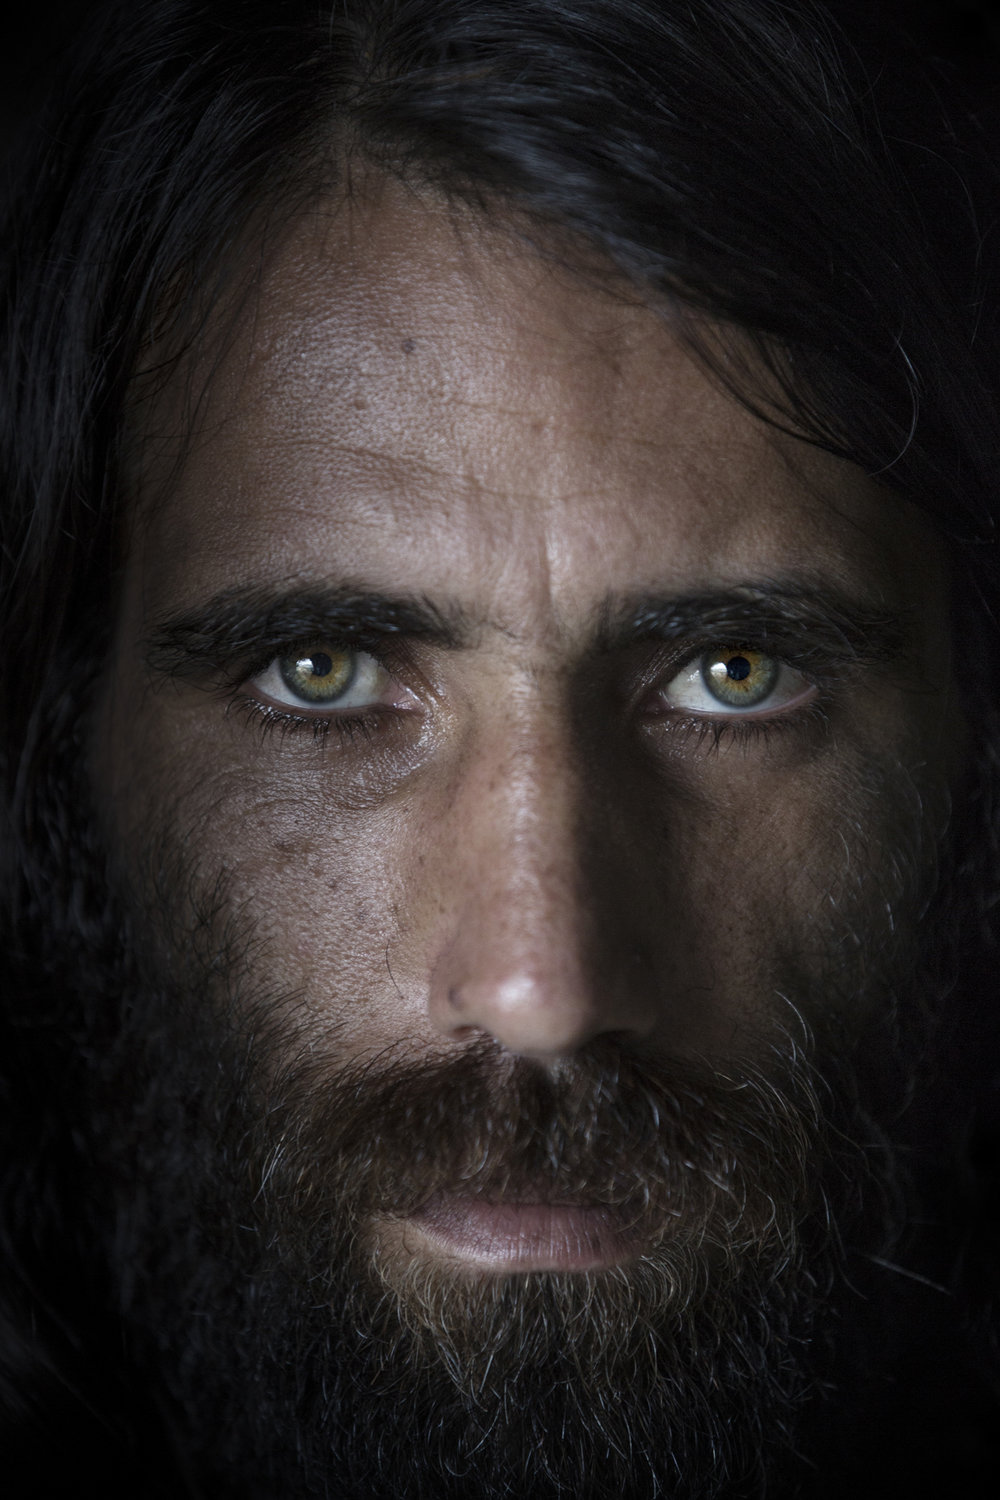 Behrouz Boochani from Iran, exiled asylum seekers on the remote island of Manus / Papua New Guinea